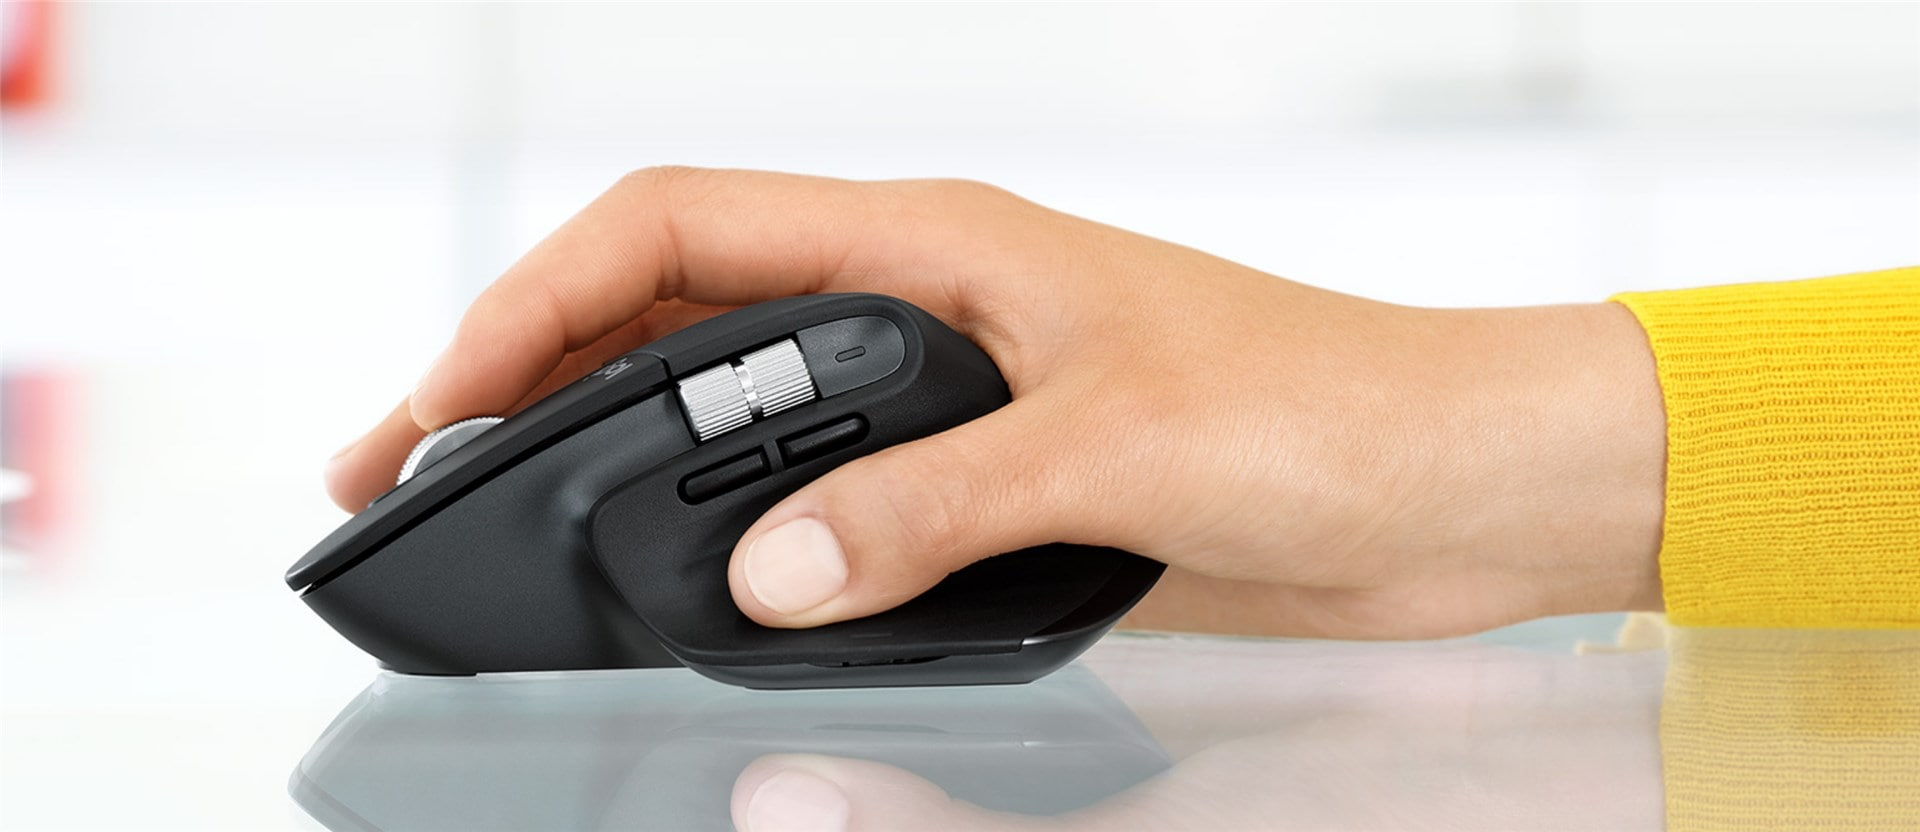 Logitech MX Master 3 is out, comes with a MagSpeed Scroll Wheel